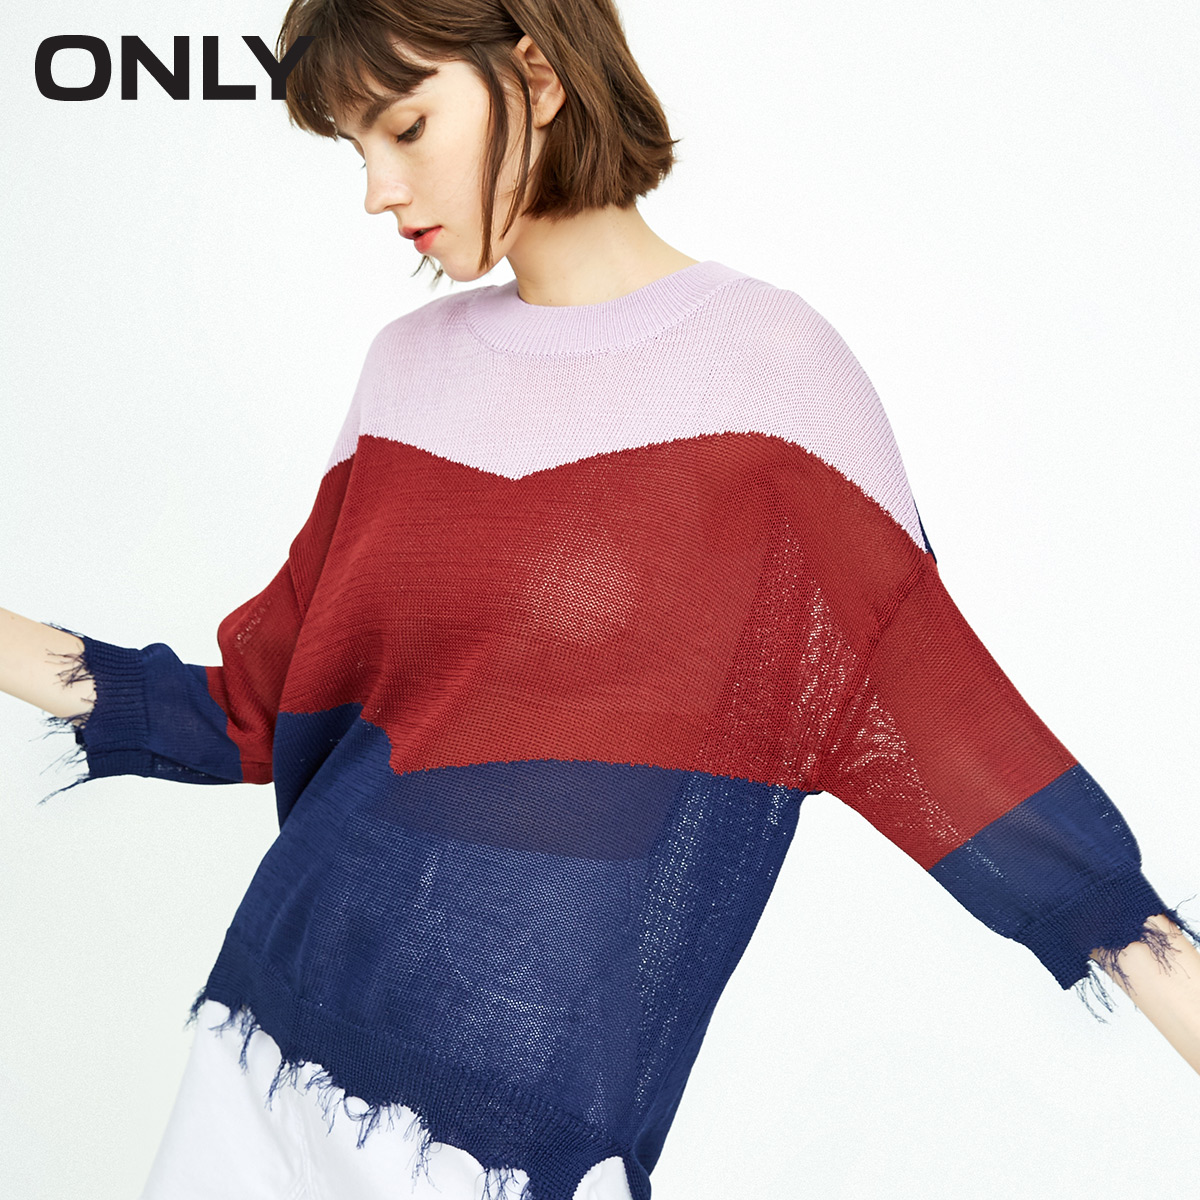 ONLY Autumn New Loose Vintage Three-quarter Sleeve Sweater Women   |  118324509